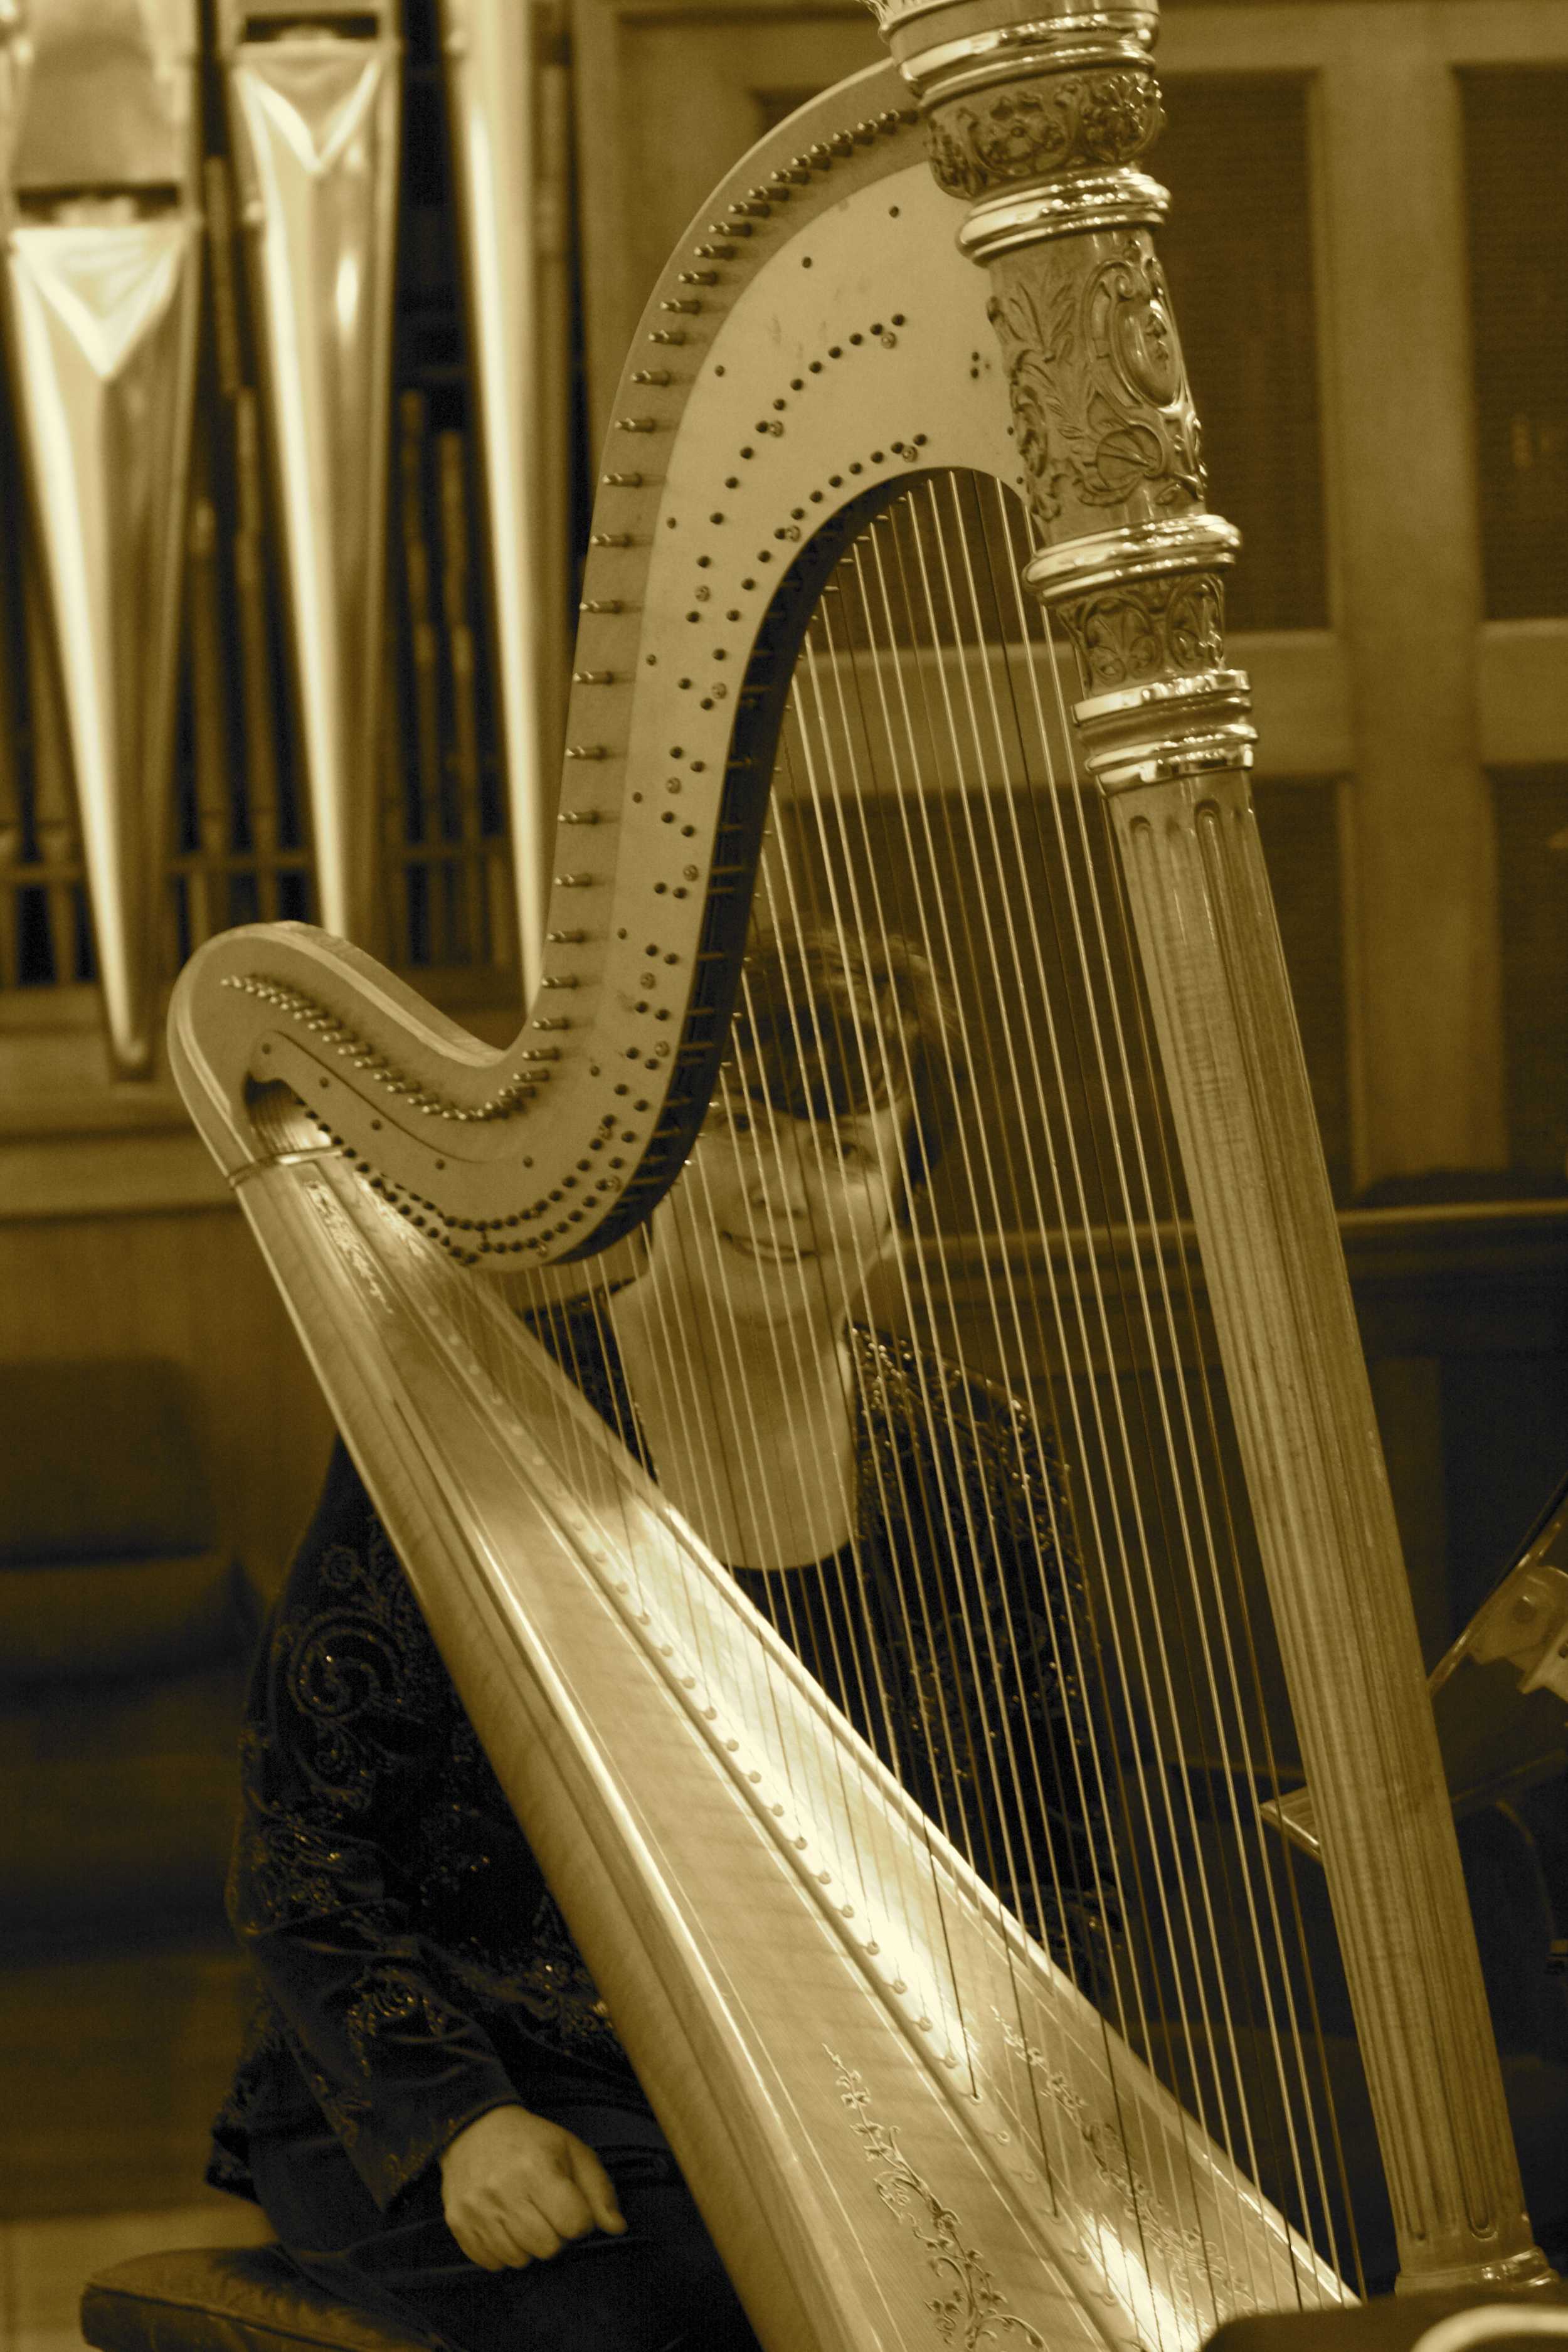 harp and organ combo - one of my favorites -